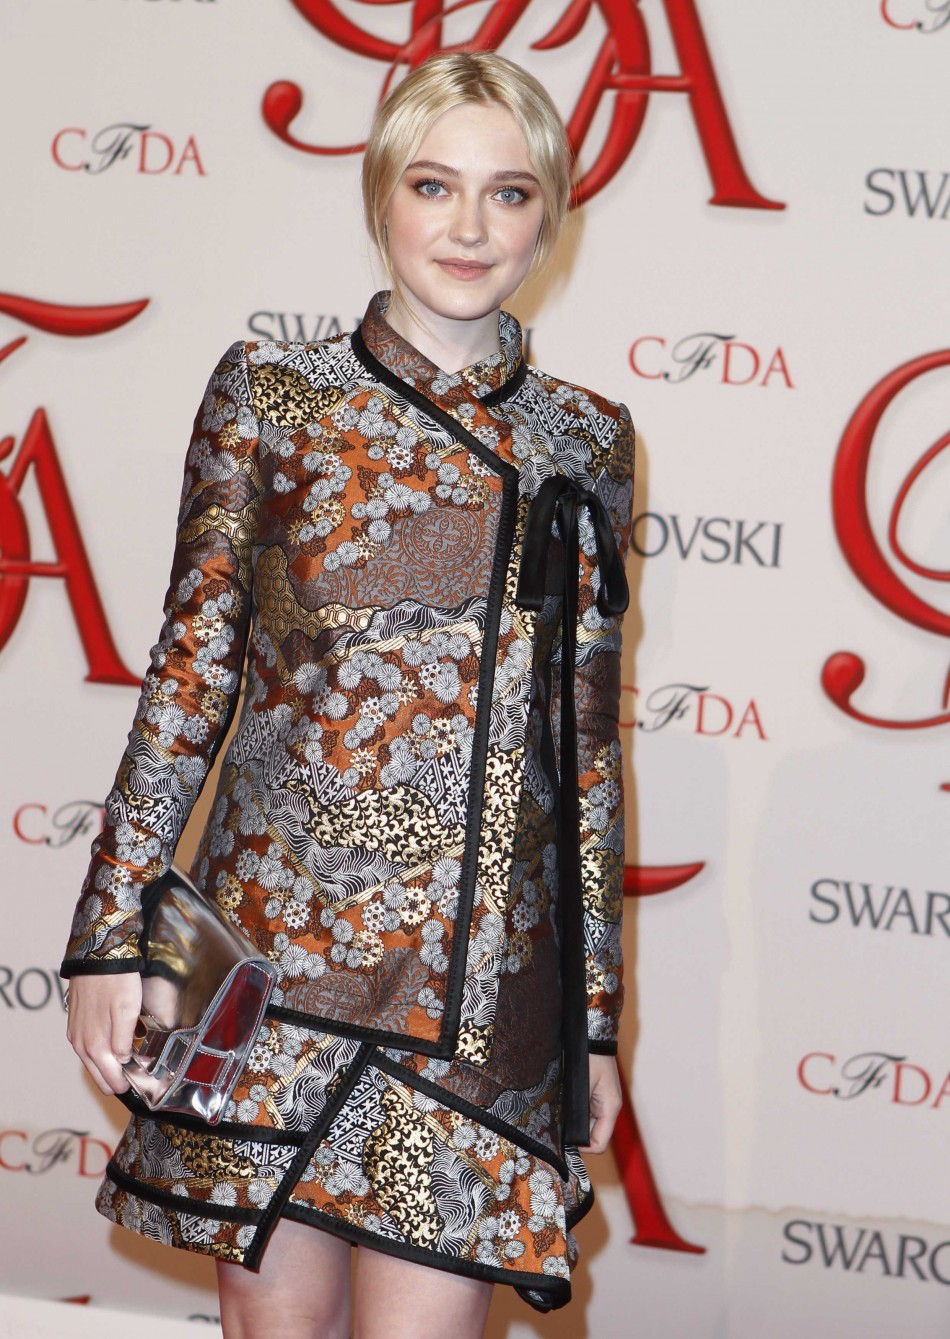 Actress Fanning arrives to attend the 2012 CFDA Fashion Awards in New York